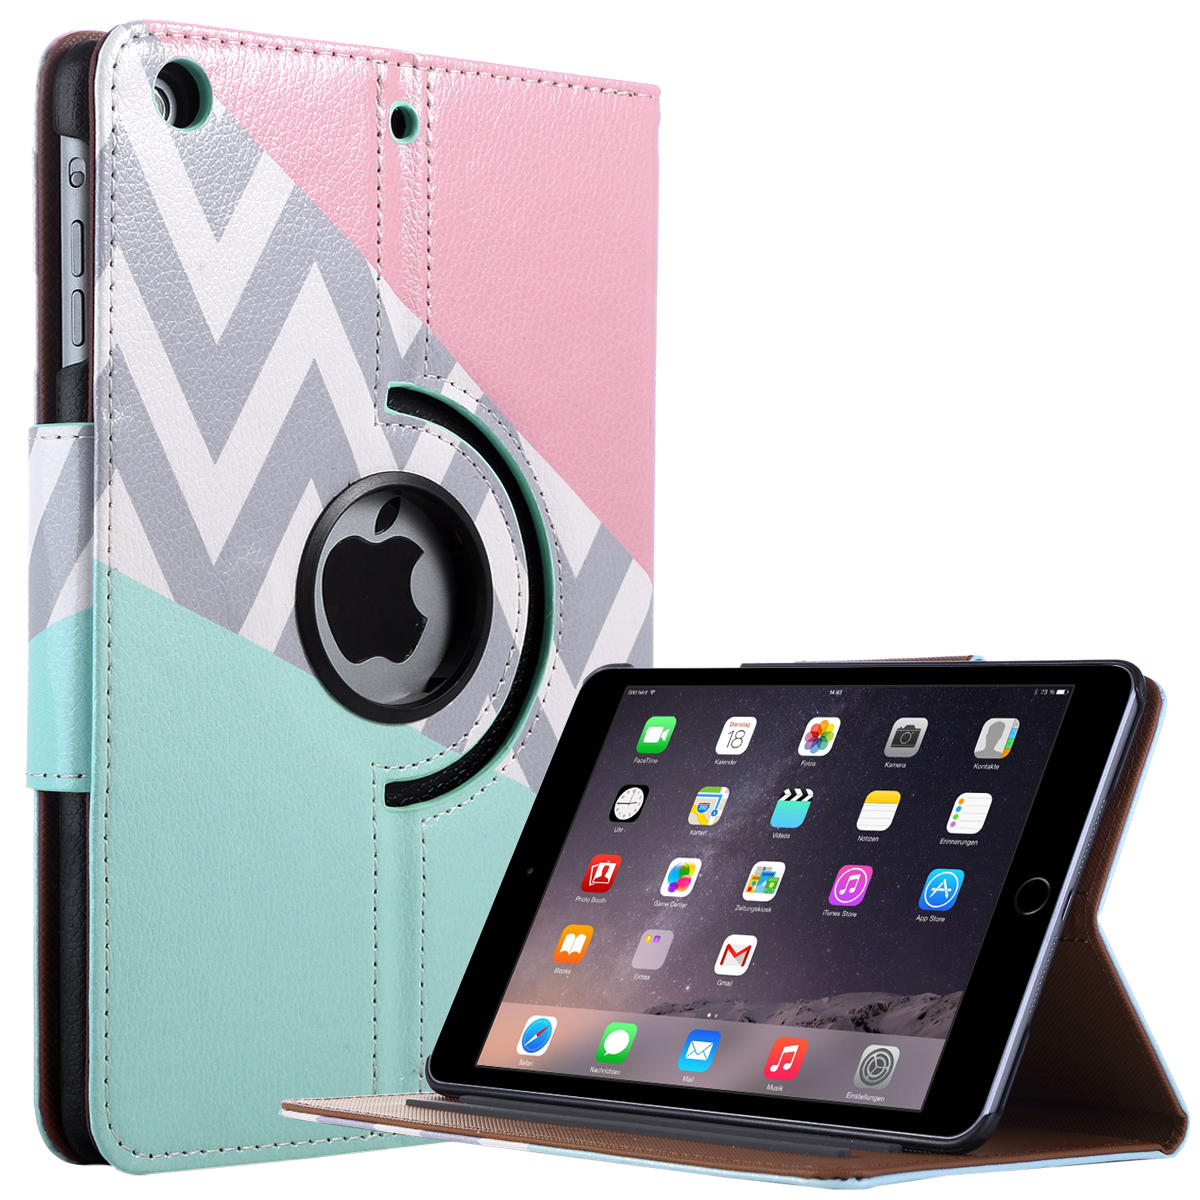 iPad Mini Case,iPad Mini 2 Case,iPad mini 3 Case,ULAK 360 Degree Rotating Synthetic Leather Stand Case Smart Cover for Apple iPad Mini 1/2/3 with Auto Sleep/Wake Function